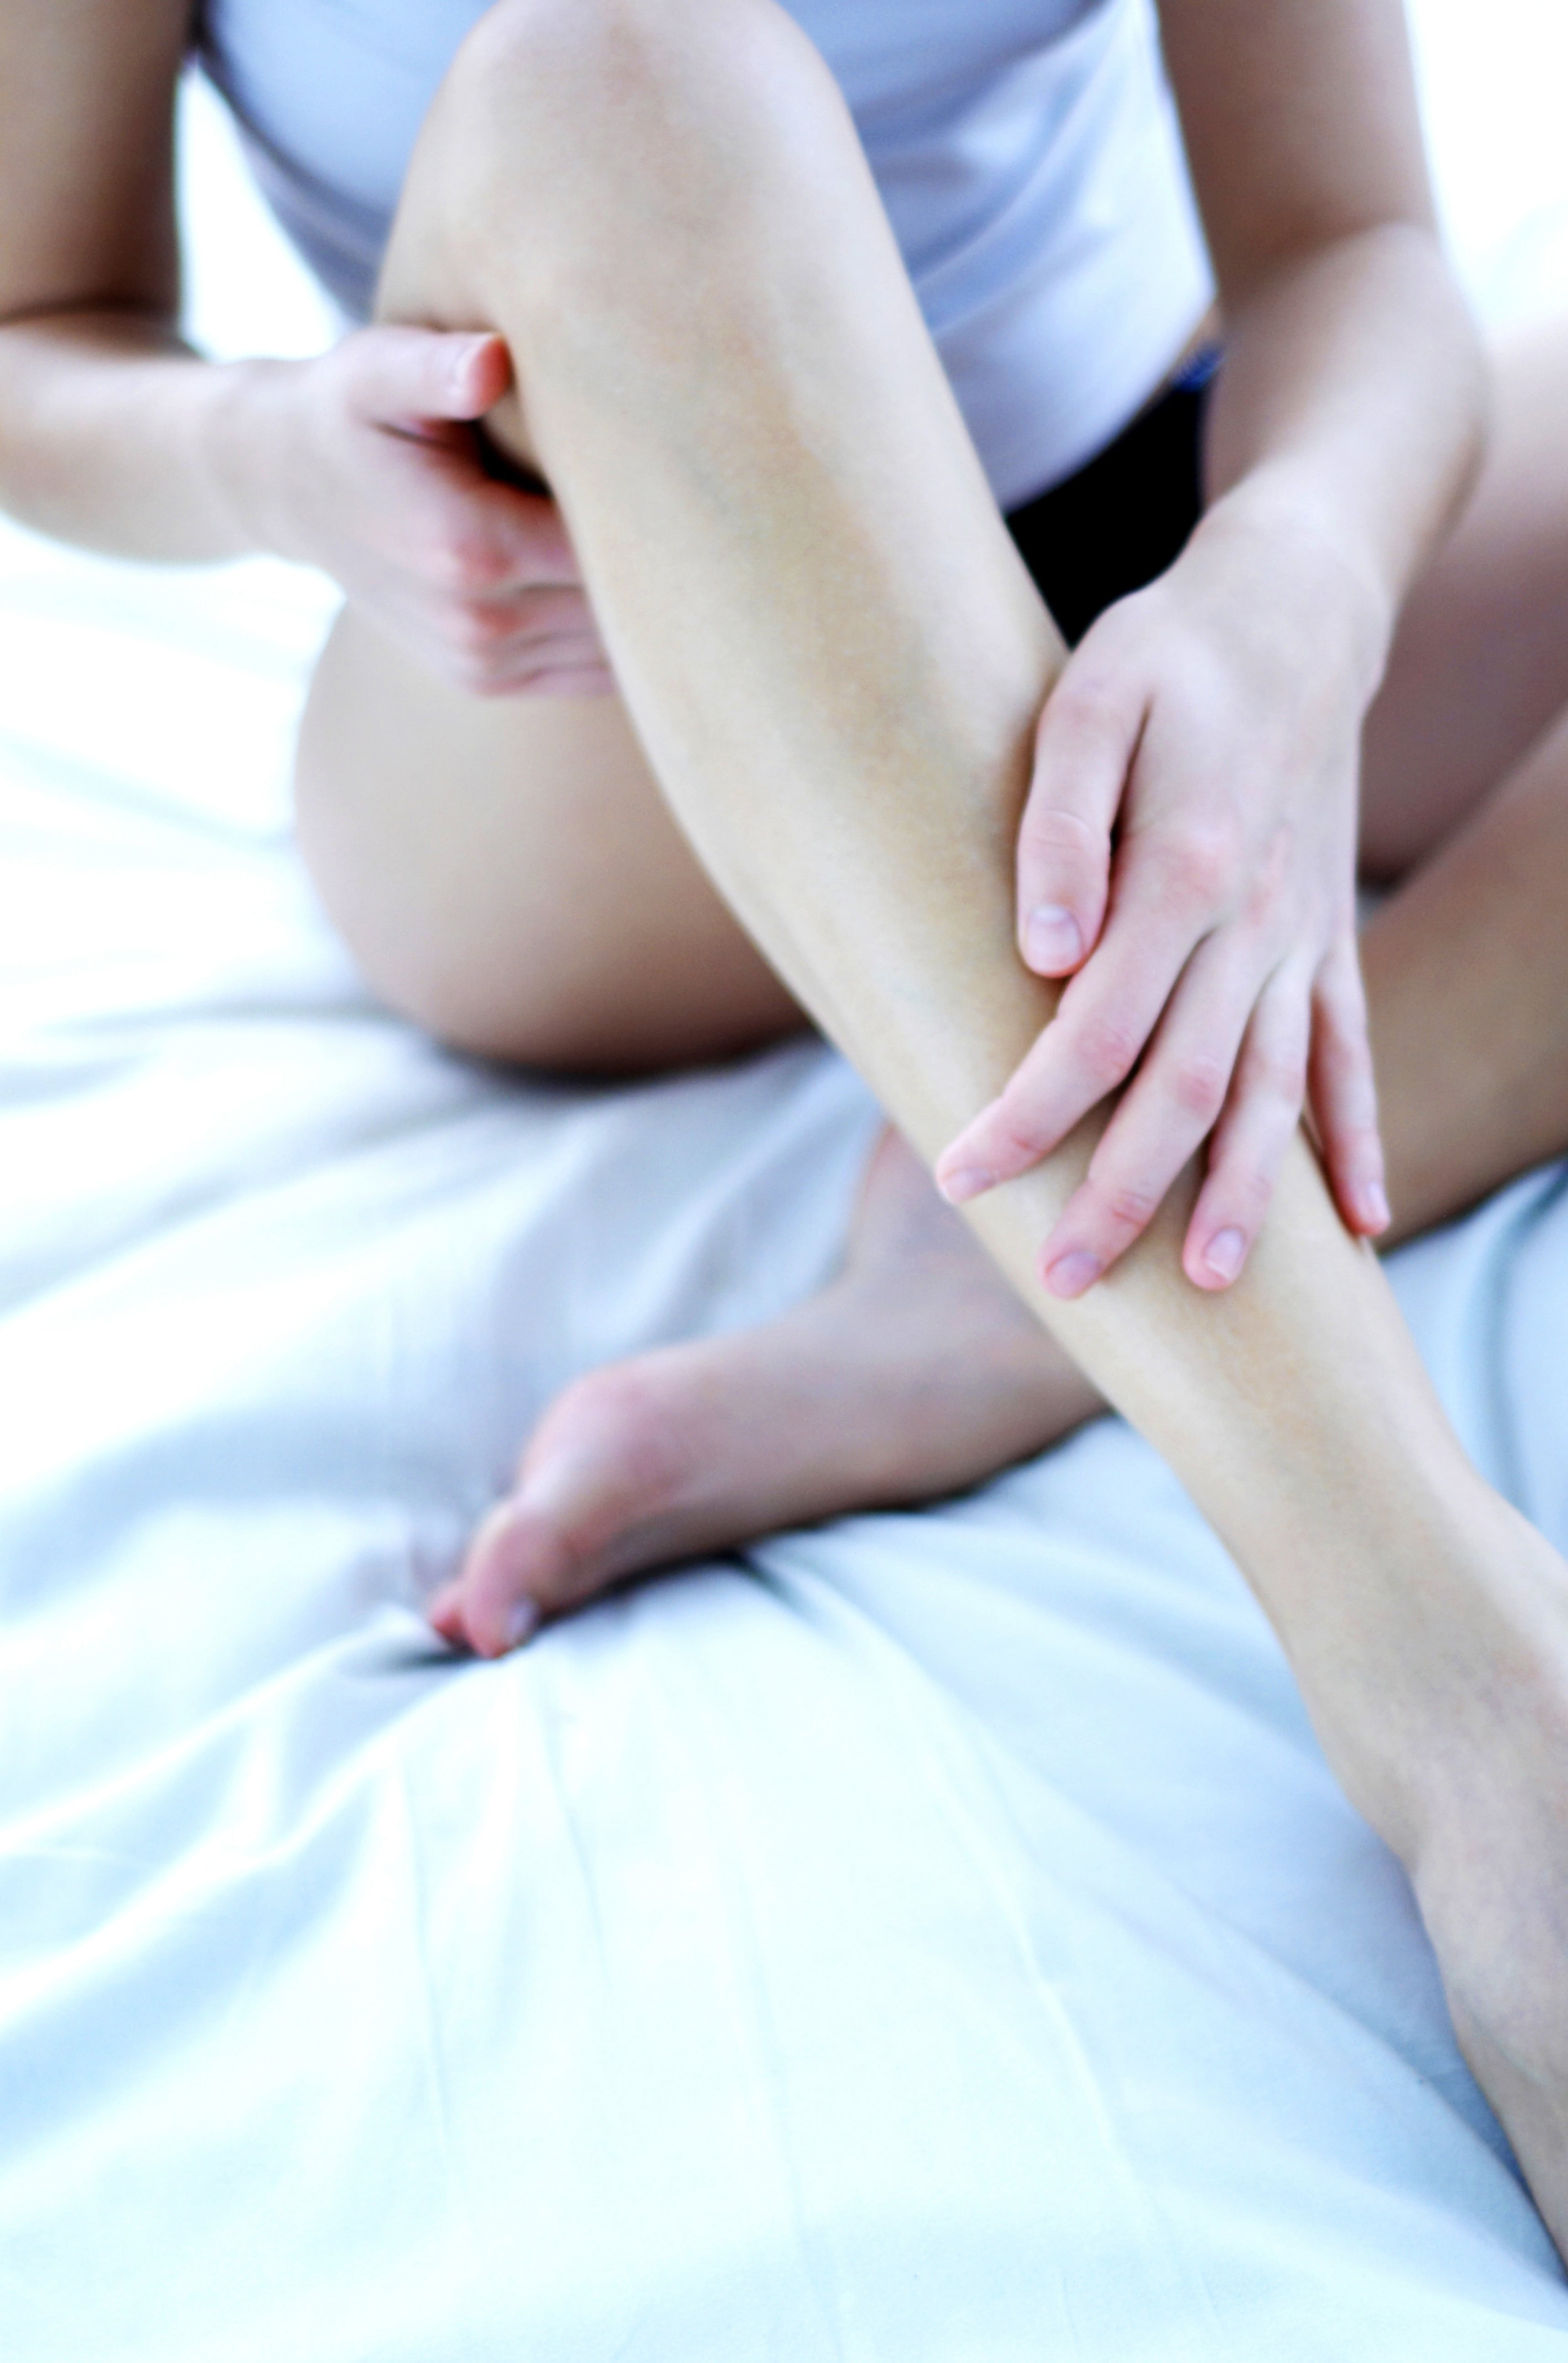 Best Numbing Cream For Laser Hair Removal